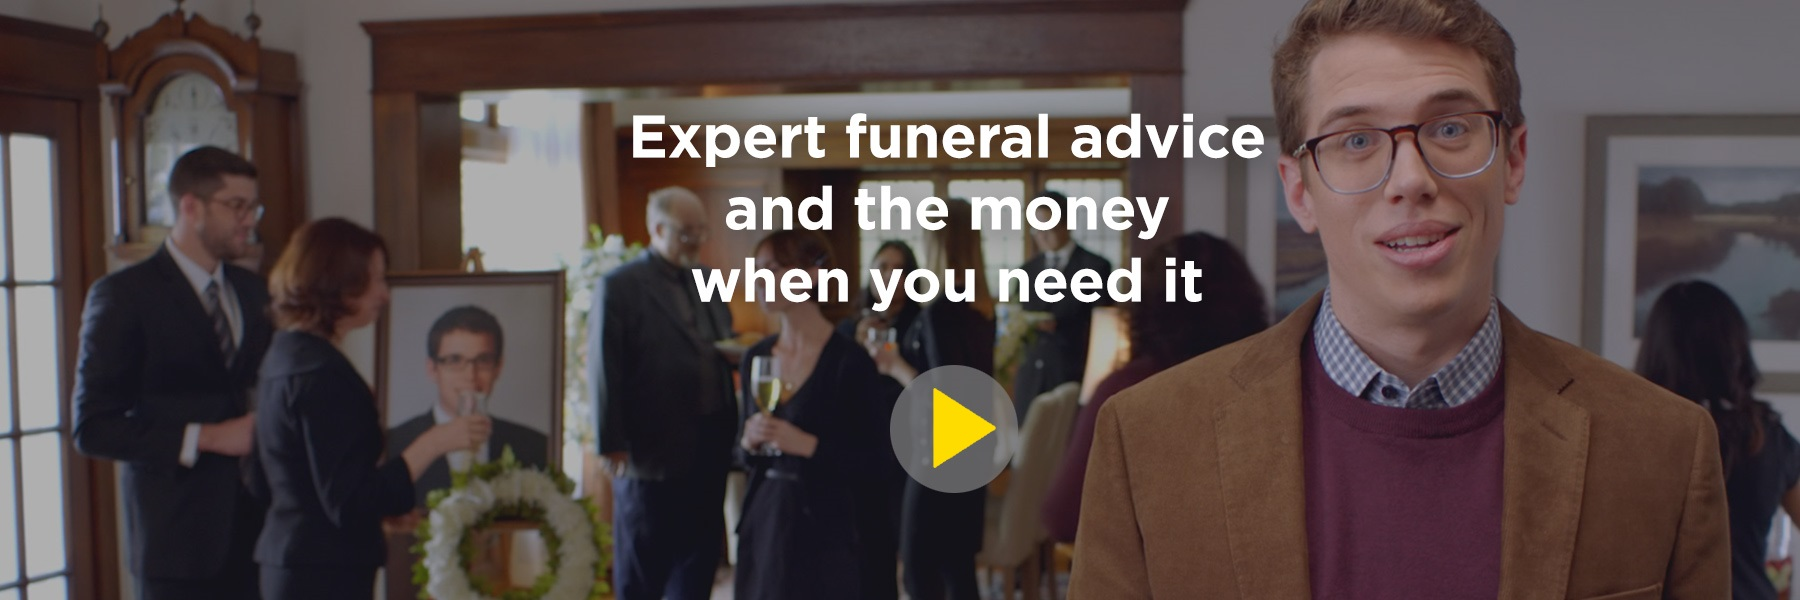 Everest Funeral - Expert funeral advice and the money when you need it